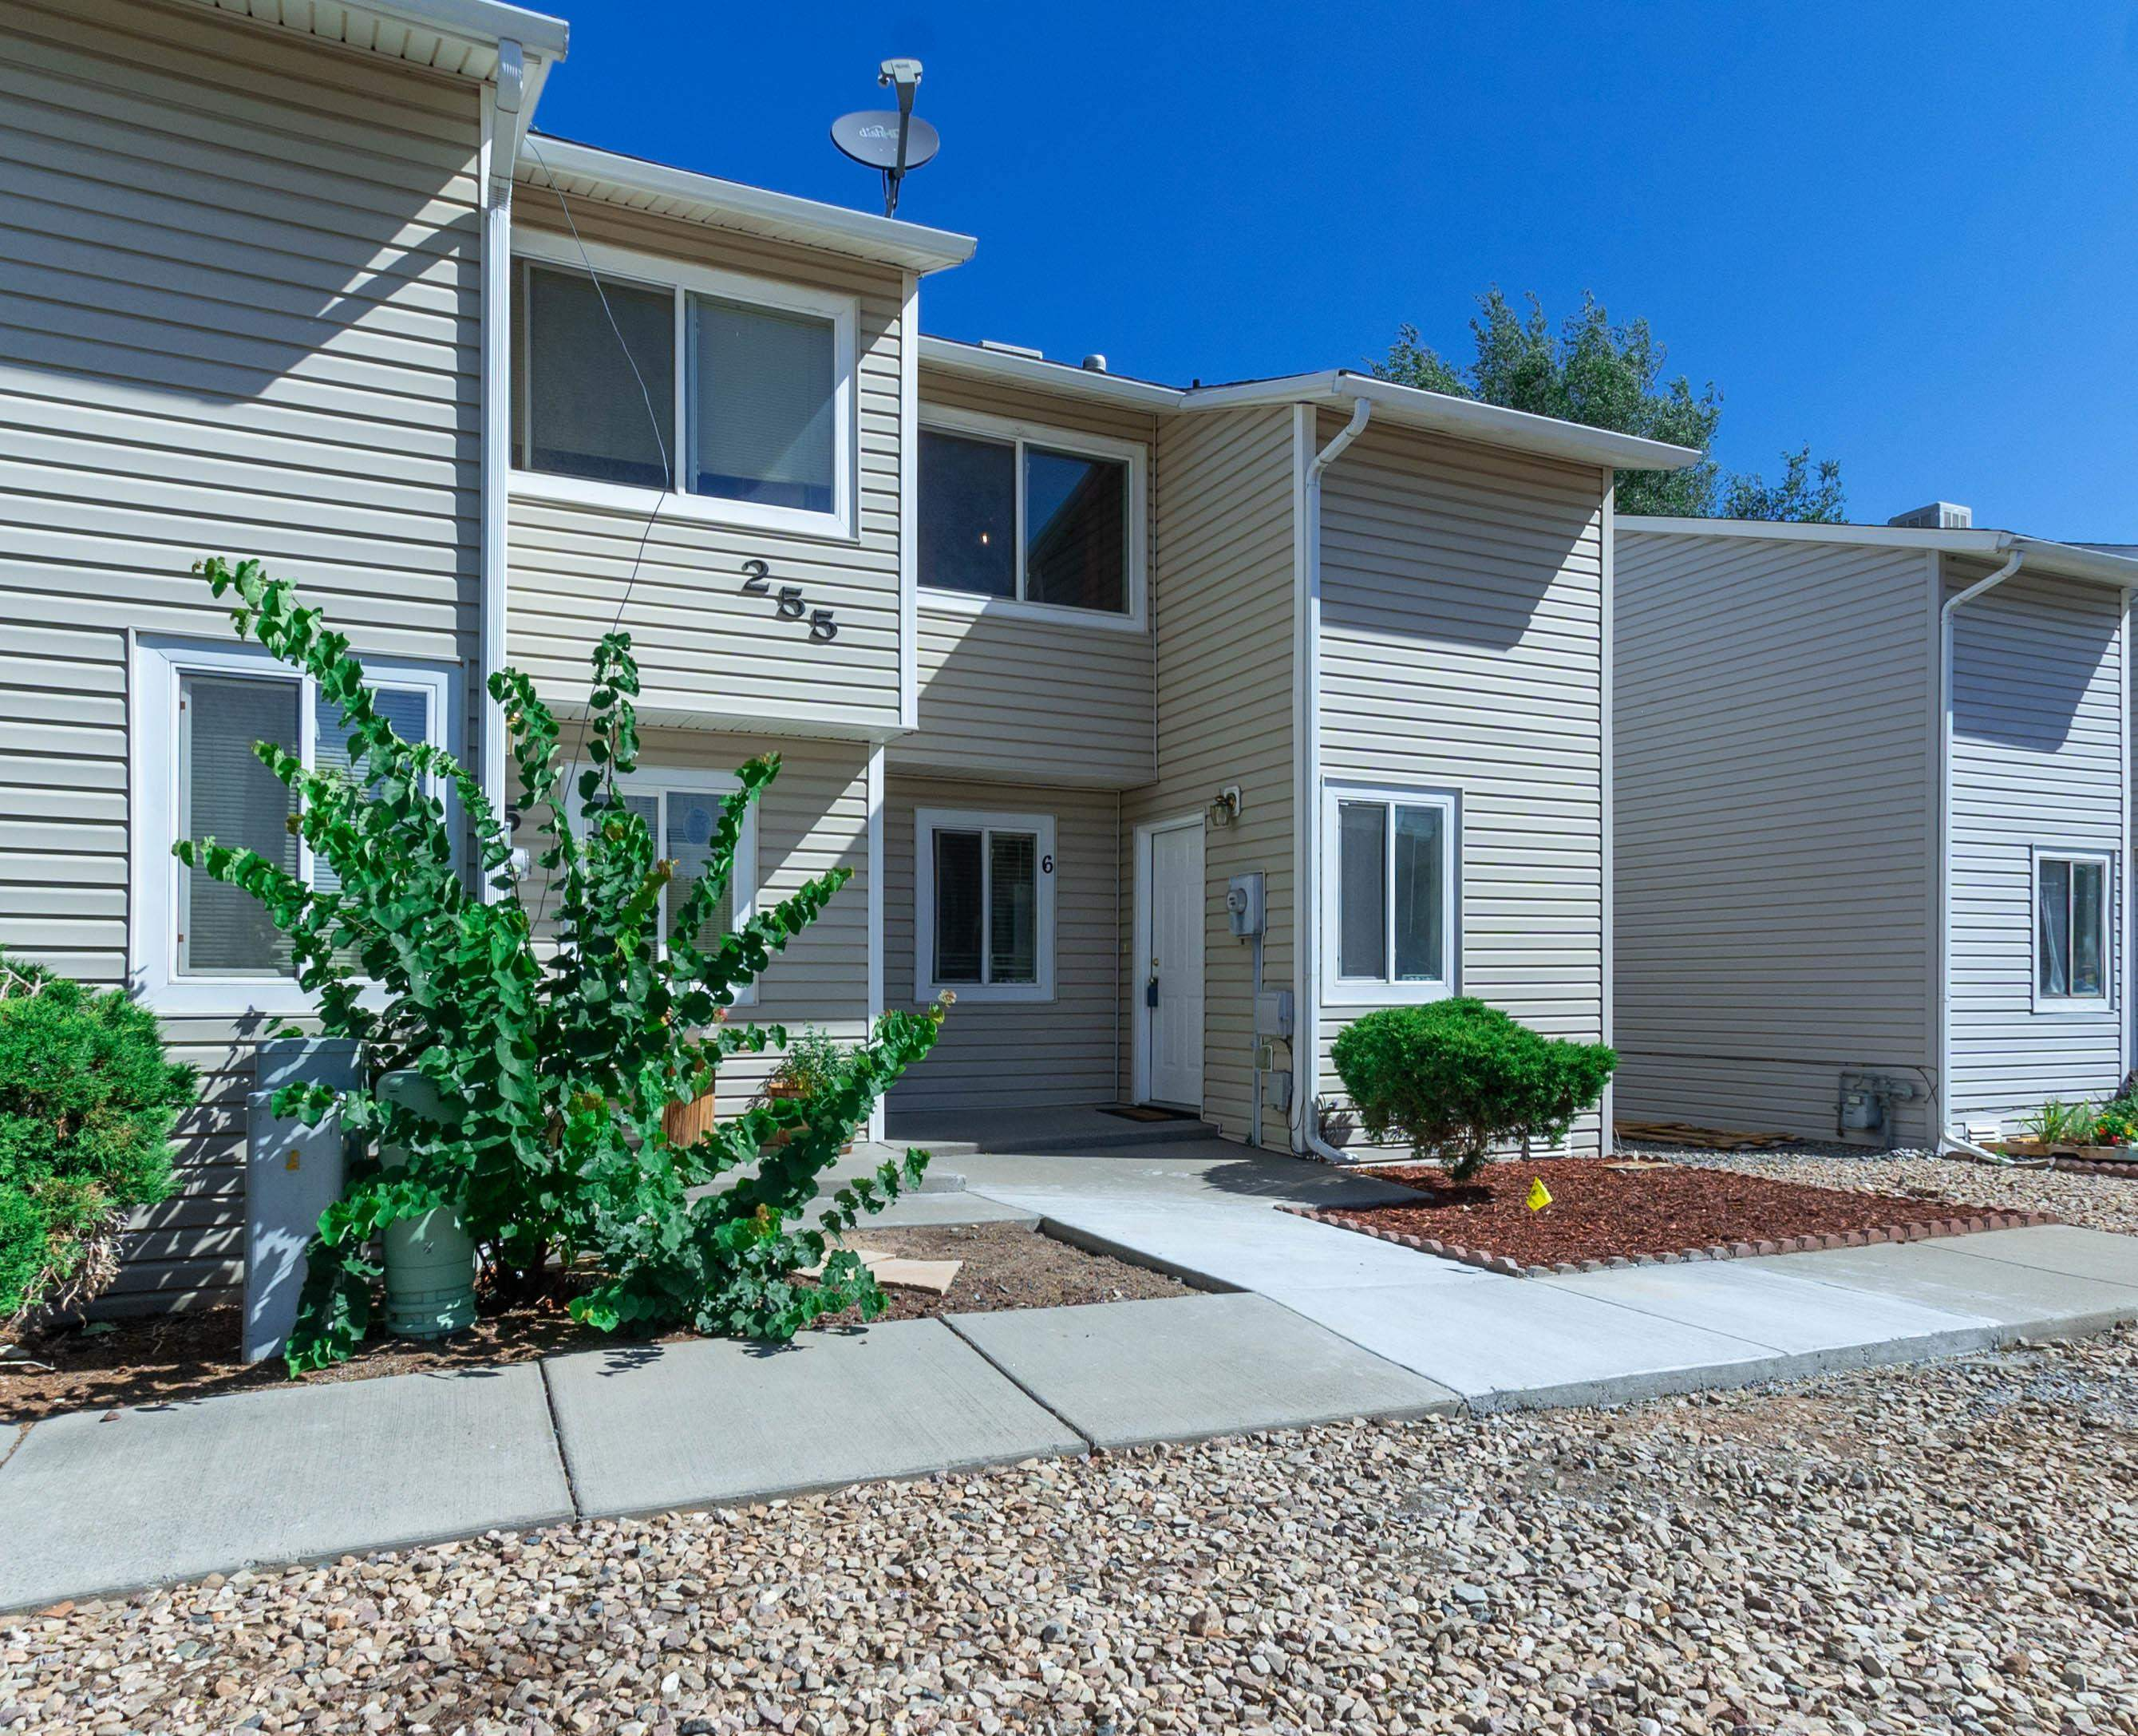 Cute end unit townhome in Orchard Mesa. Both bedrooms, full bath, and laundry area are upstairs. Master bedroom has a large walk-in closet. Stackable washer and dryer are included. Downstairs, the kitchen has a bar area that opens to the large, comfortable living room. The half bath downstairs is very convenient. The living room has sliding glass doors out to the fenced in back area. The back yard could be a play area, a dog yard, or would be perfect for BBQs. There is a small storage unit included. HOA maintains roof, outside of building, and common areas.